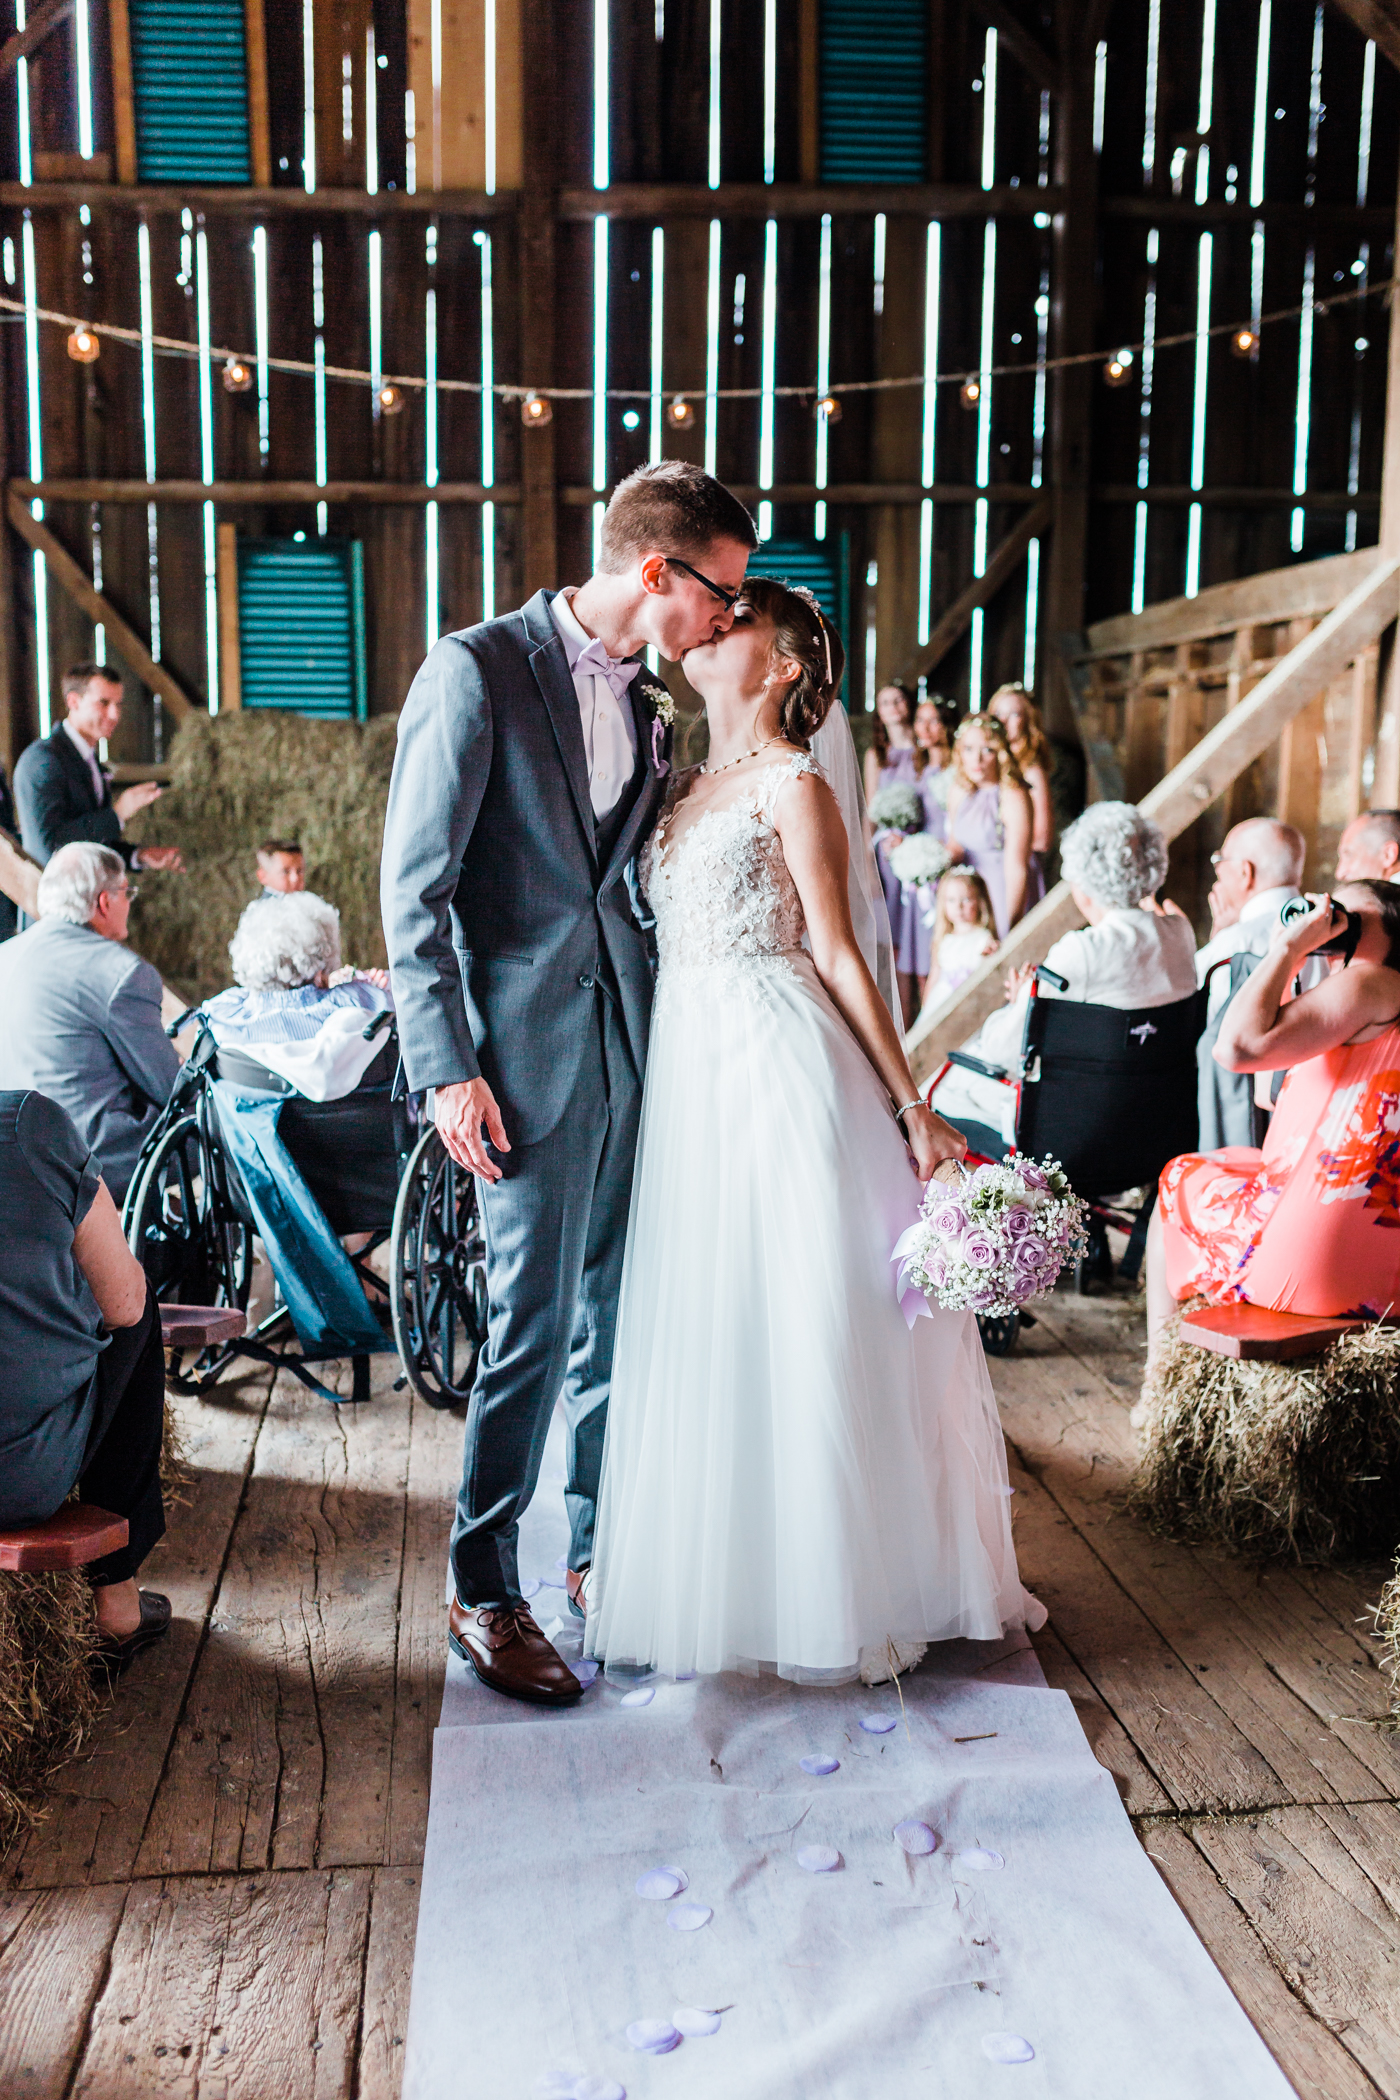 husband and wife kiss walking down the aisle - md wedding photographer and videographer